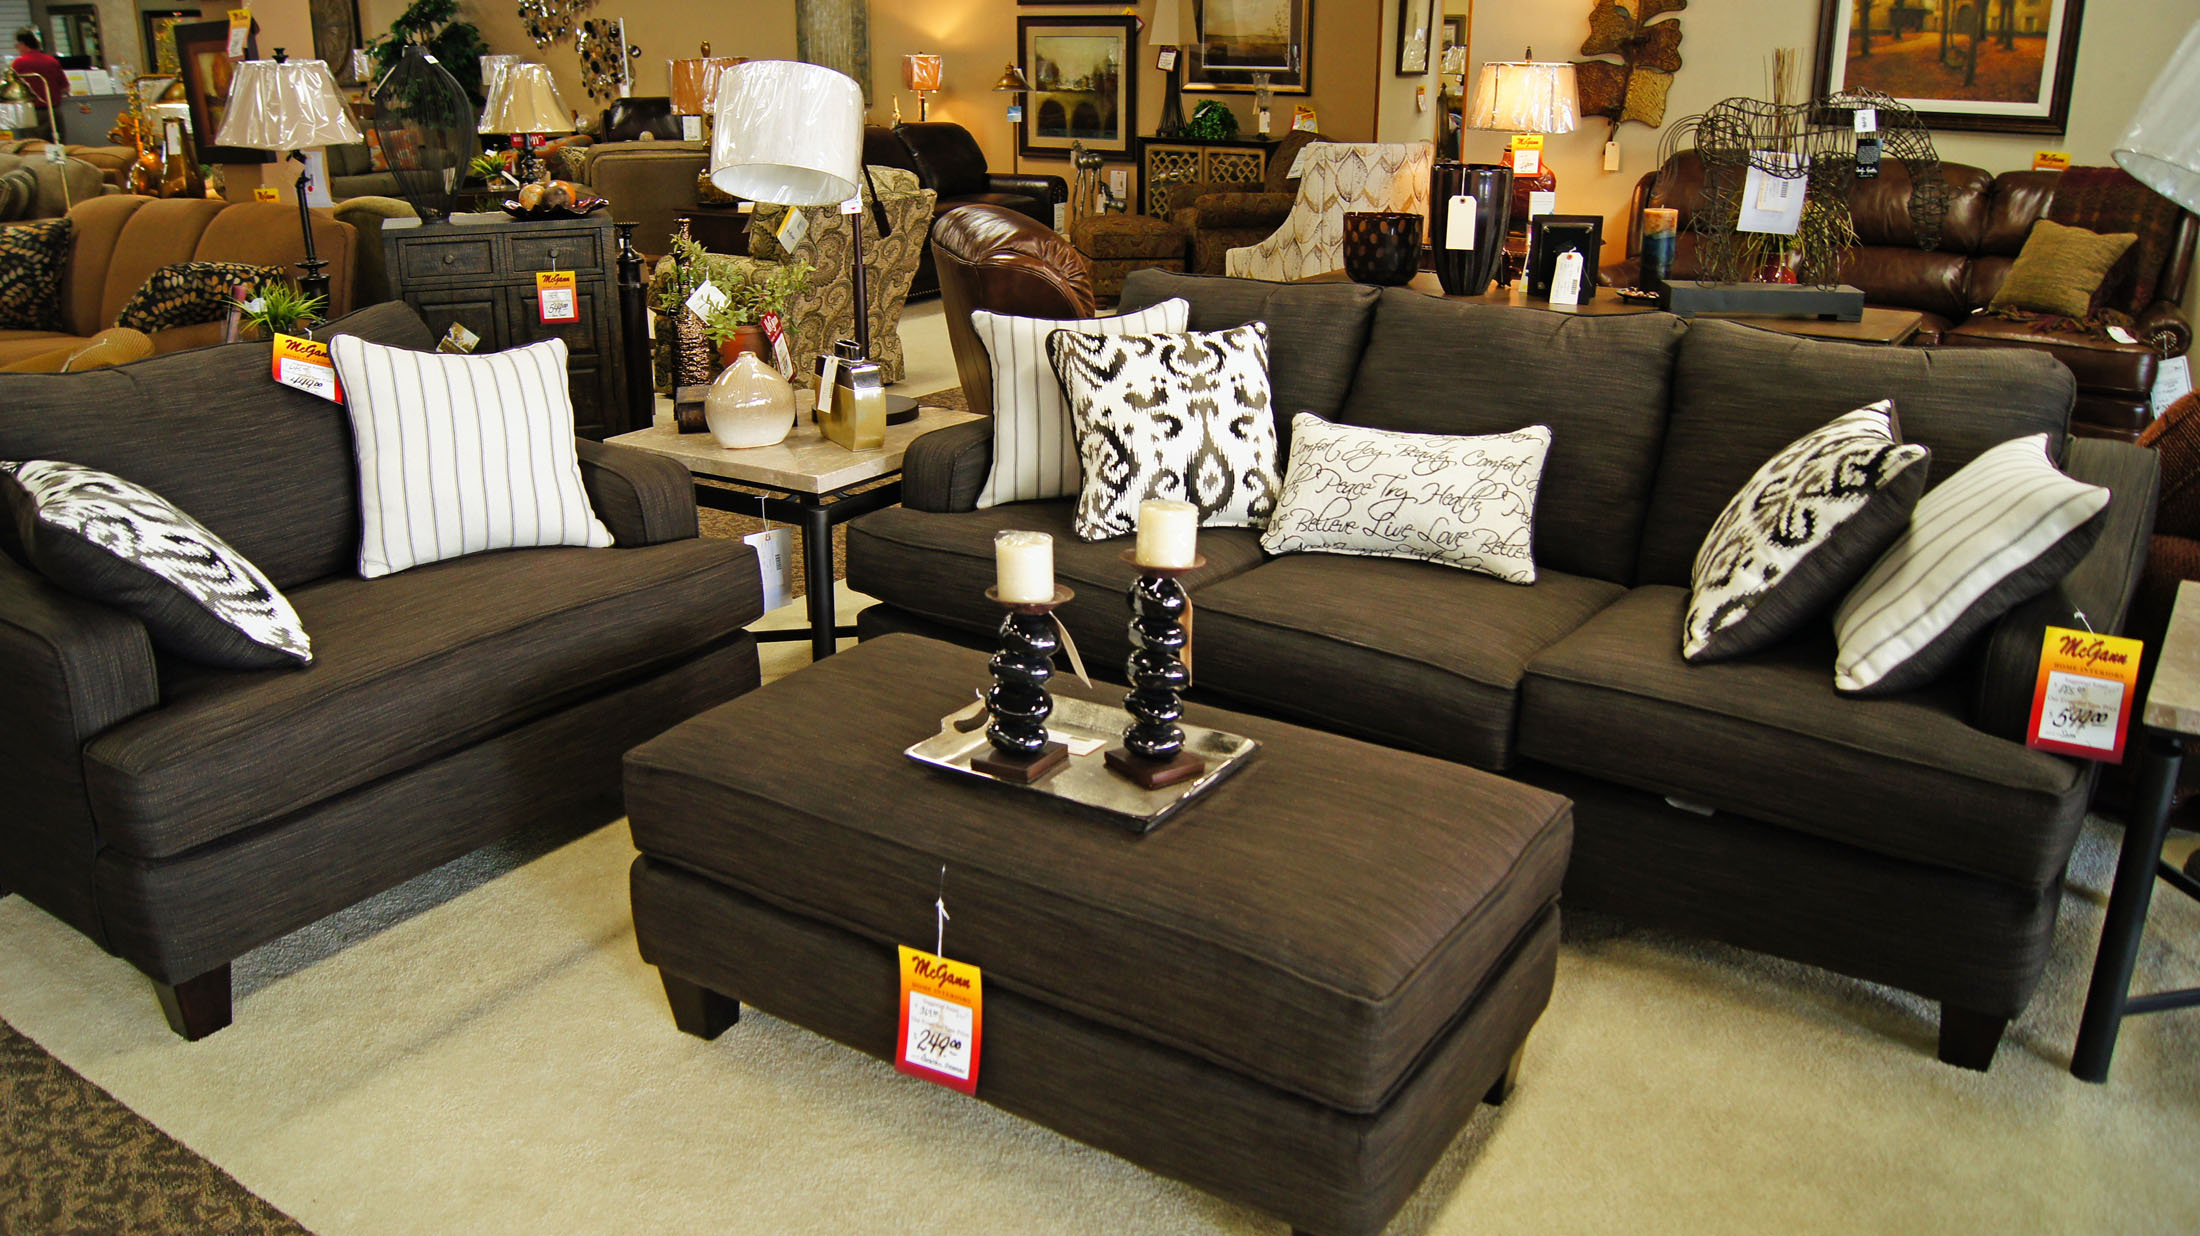 McGann Furniture & Home Store Of Baraboo, Wisconsin